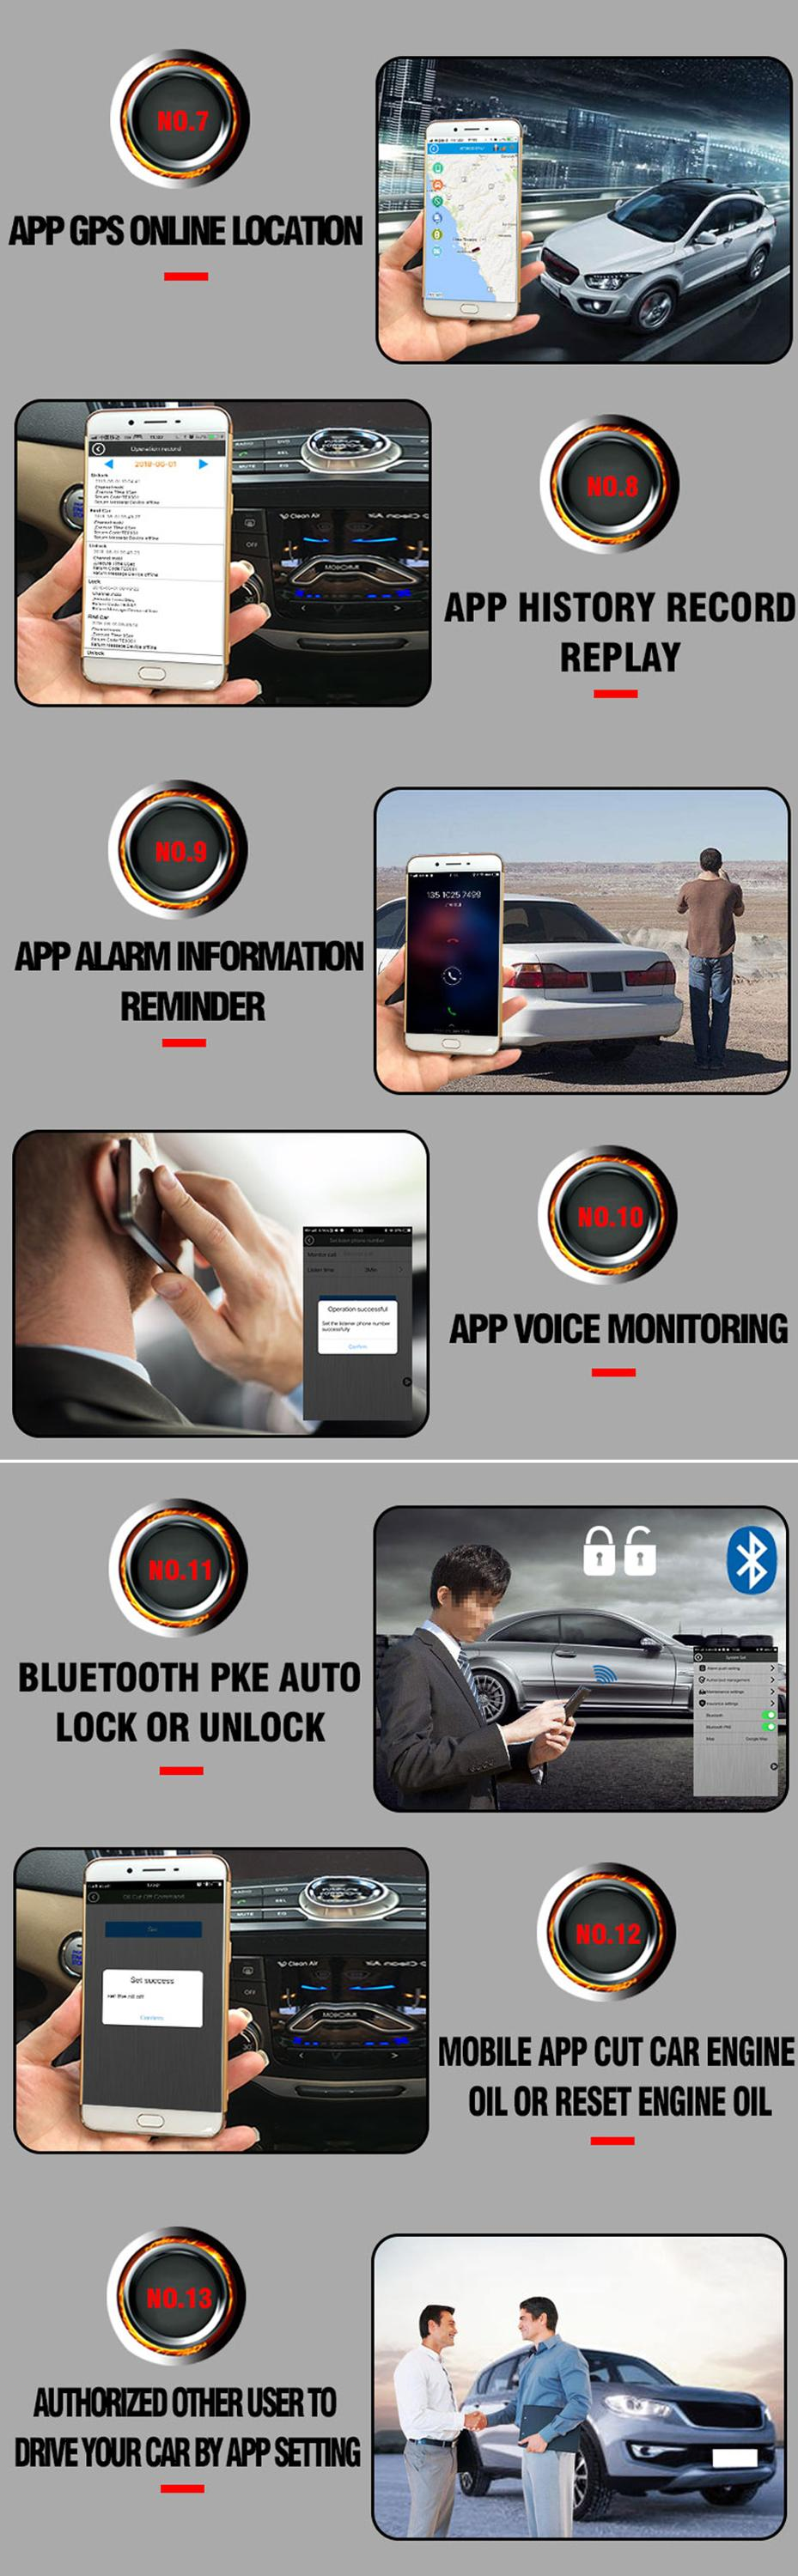 2018 year cardot gsm&gps car keyless entry proximity sensor security alarm system auto engine start stop mobile app operation